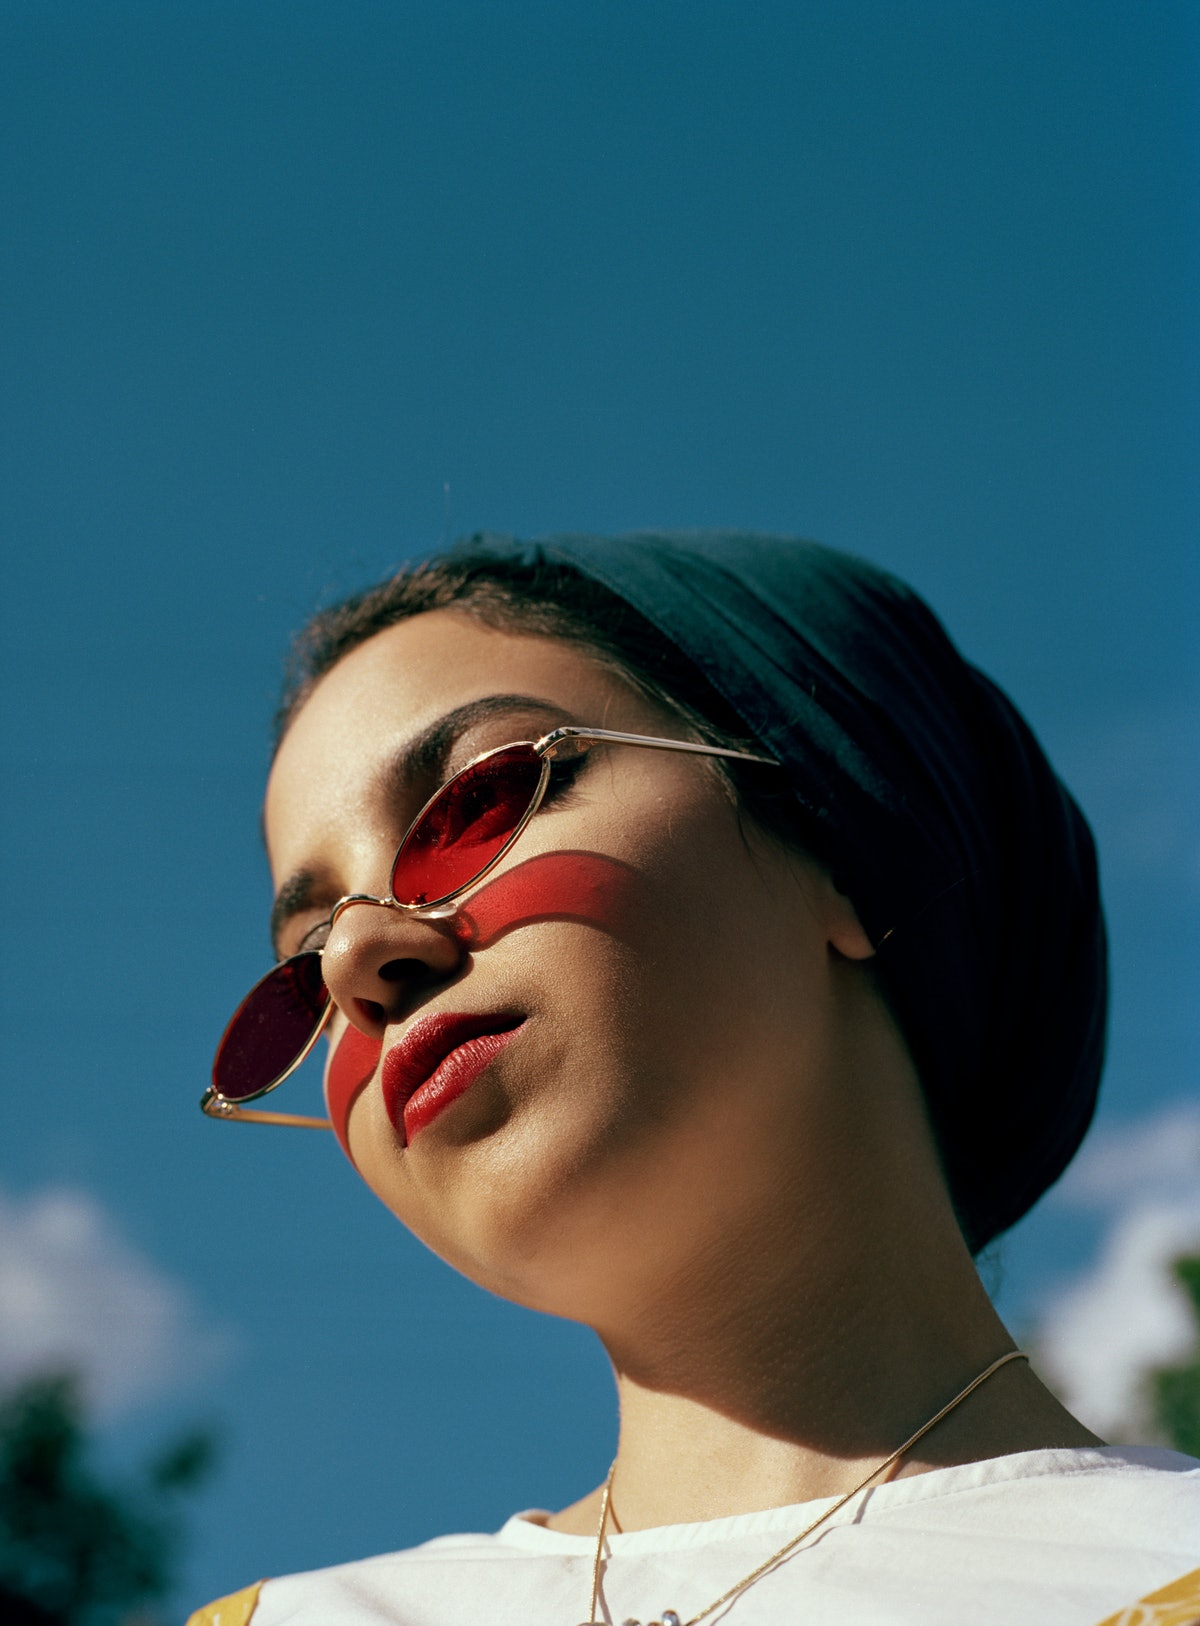 Young woman with red sunglasses during the week of May 31, 2021, waiting for her weekly horoscope.